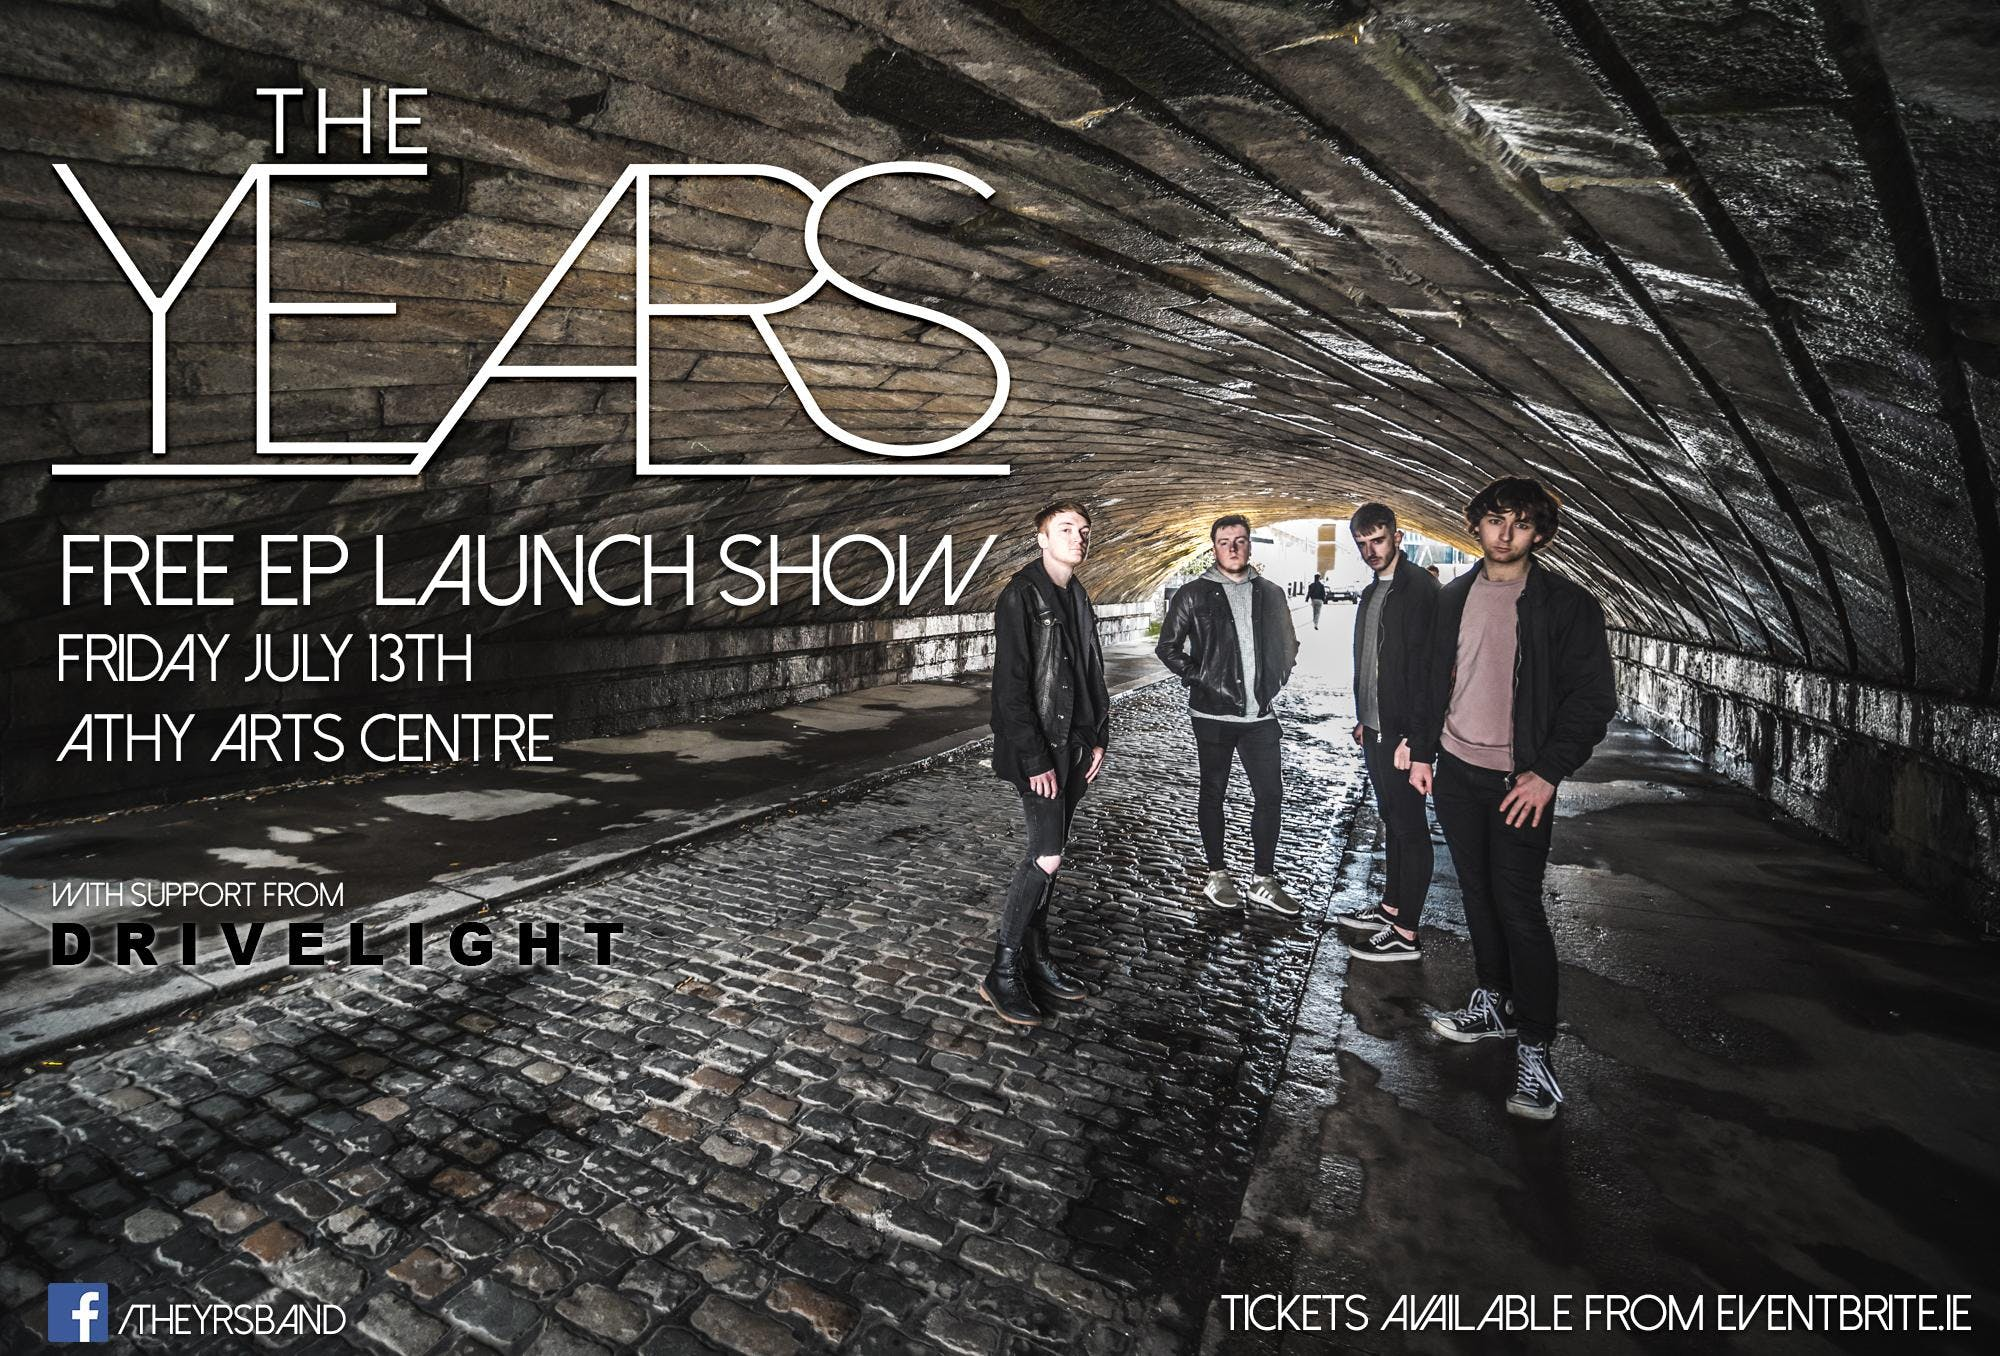 The Years EP Launch